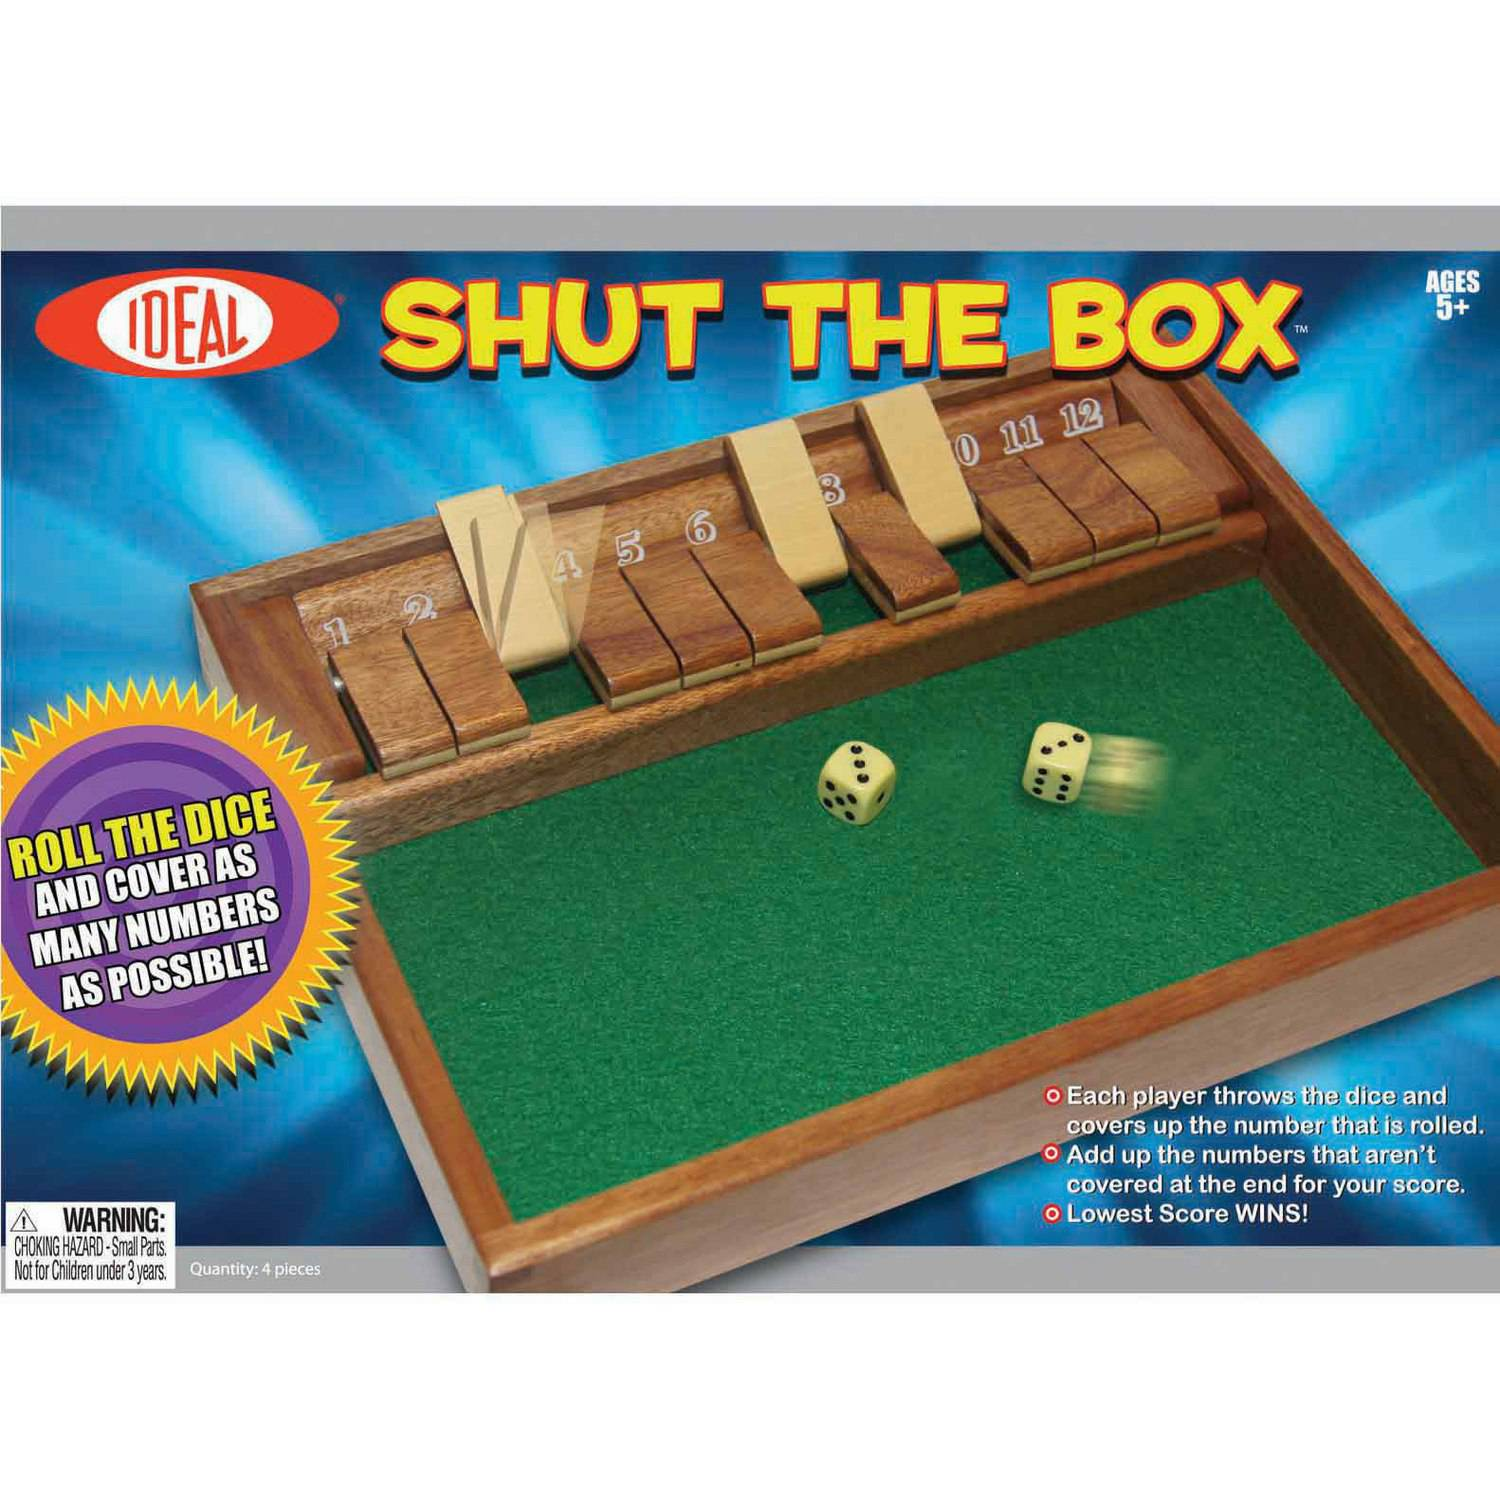 Ideal Shut the Box